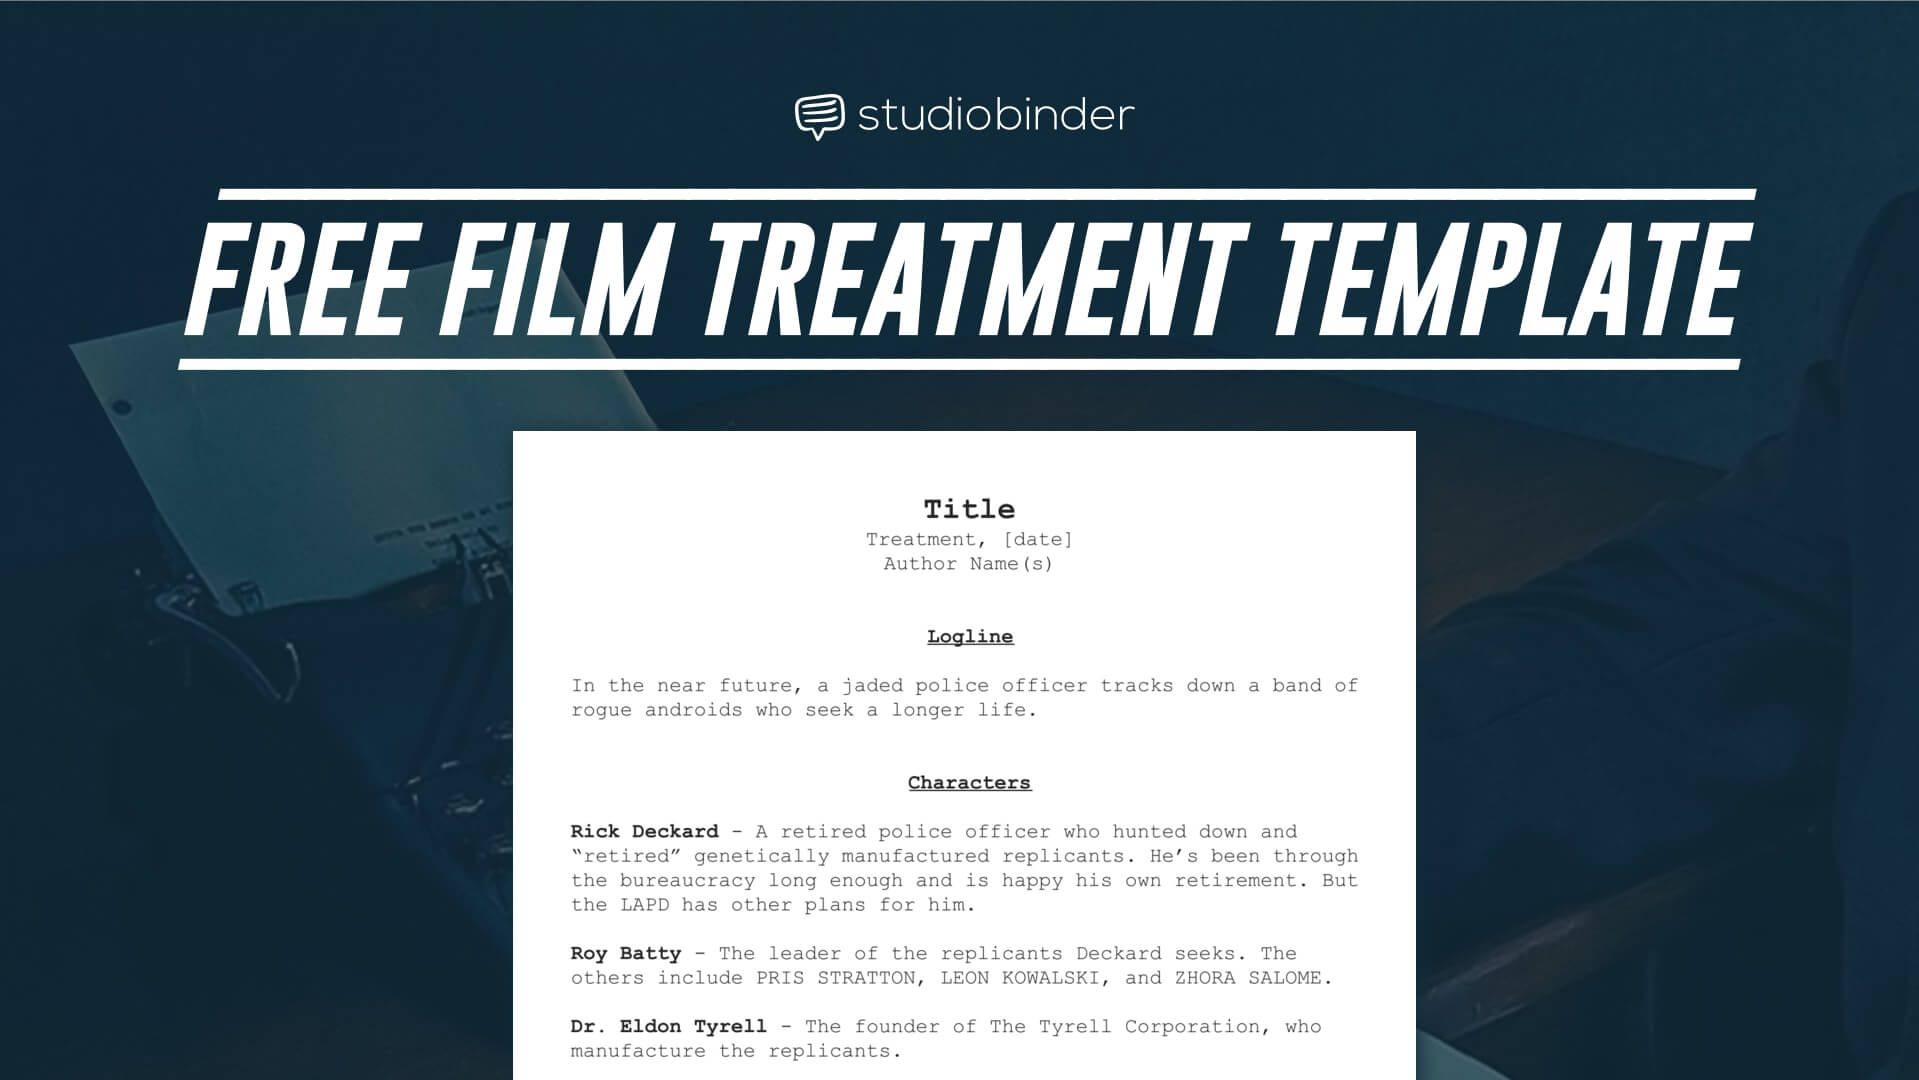 video treatment template - download your free film treatment template right now